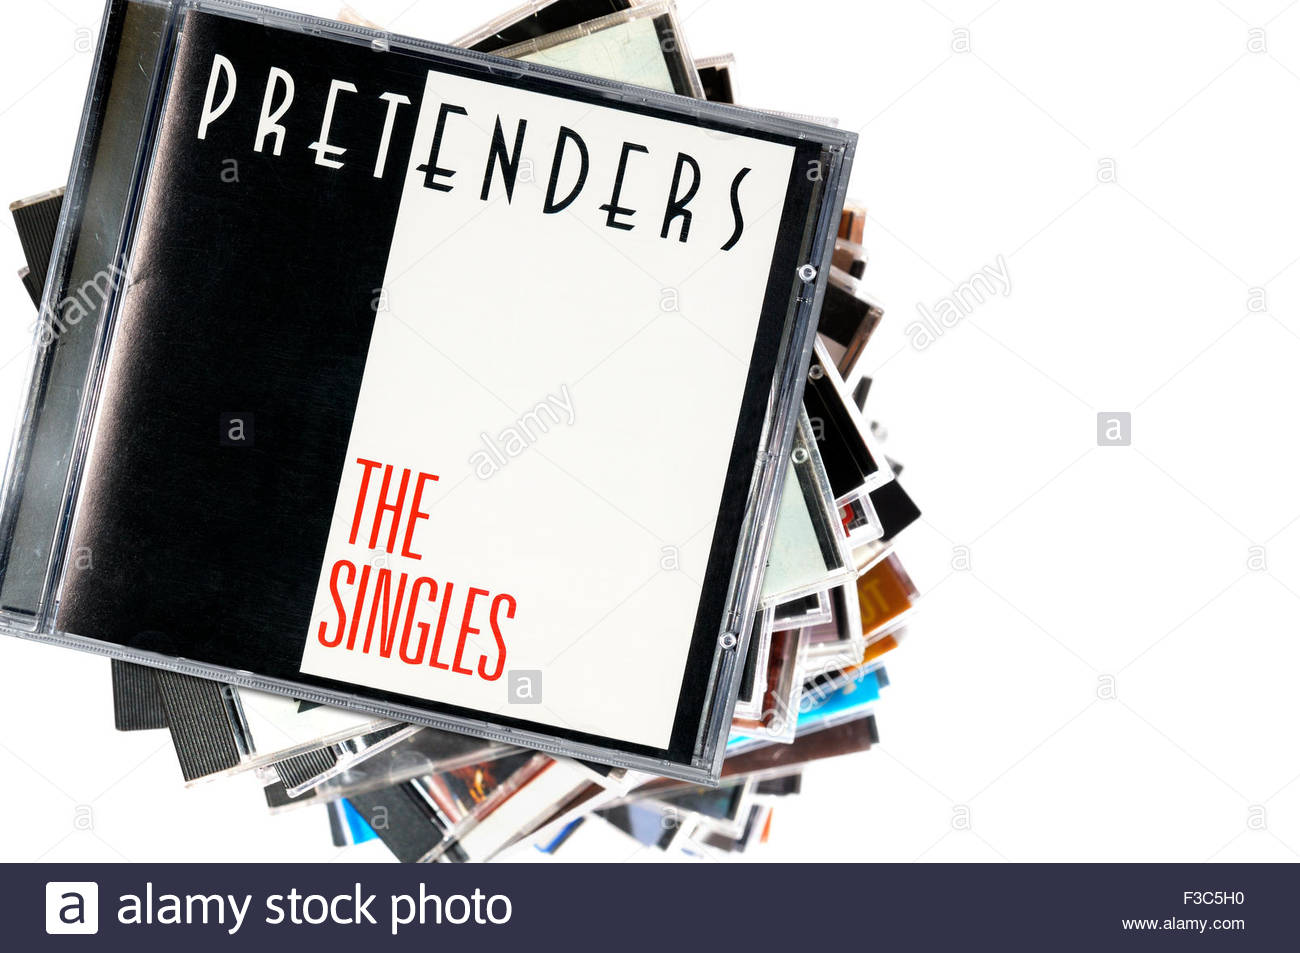 The Pretenders 1987 compilation album the Singles, album, piled music CD cases, England - Stock Image